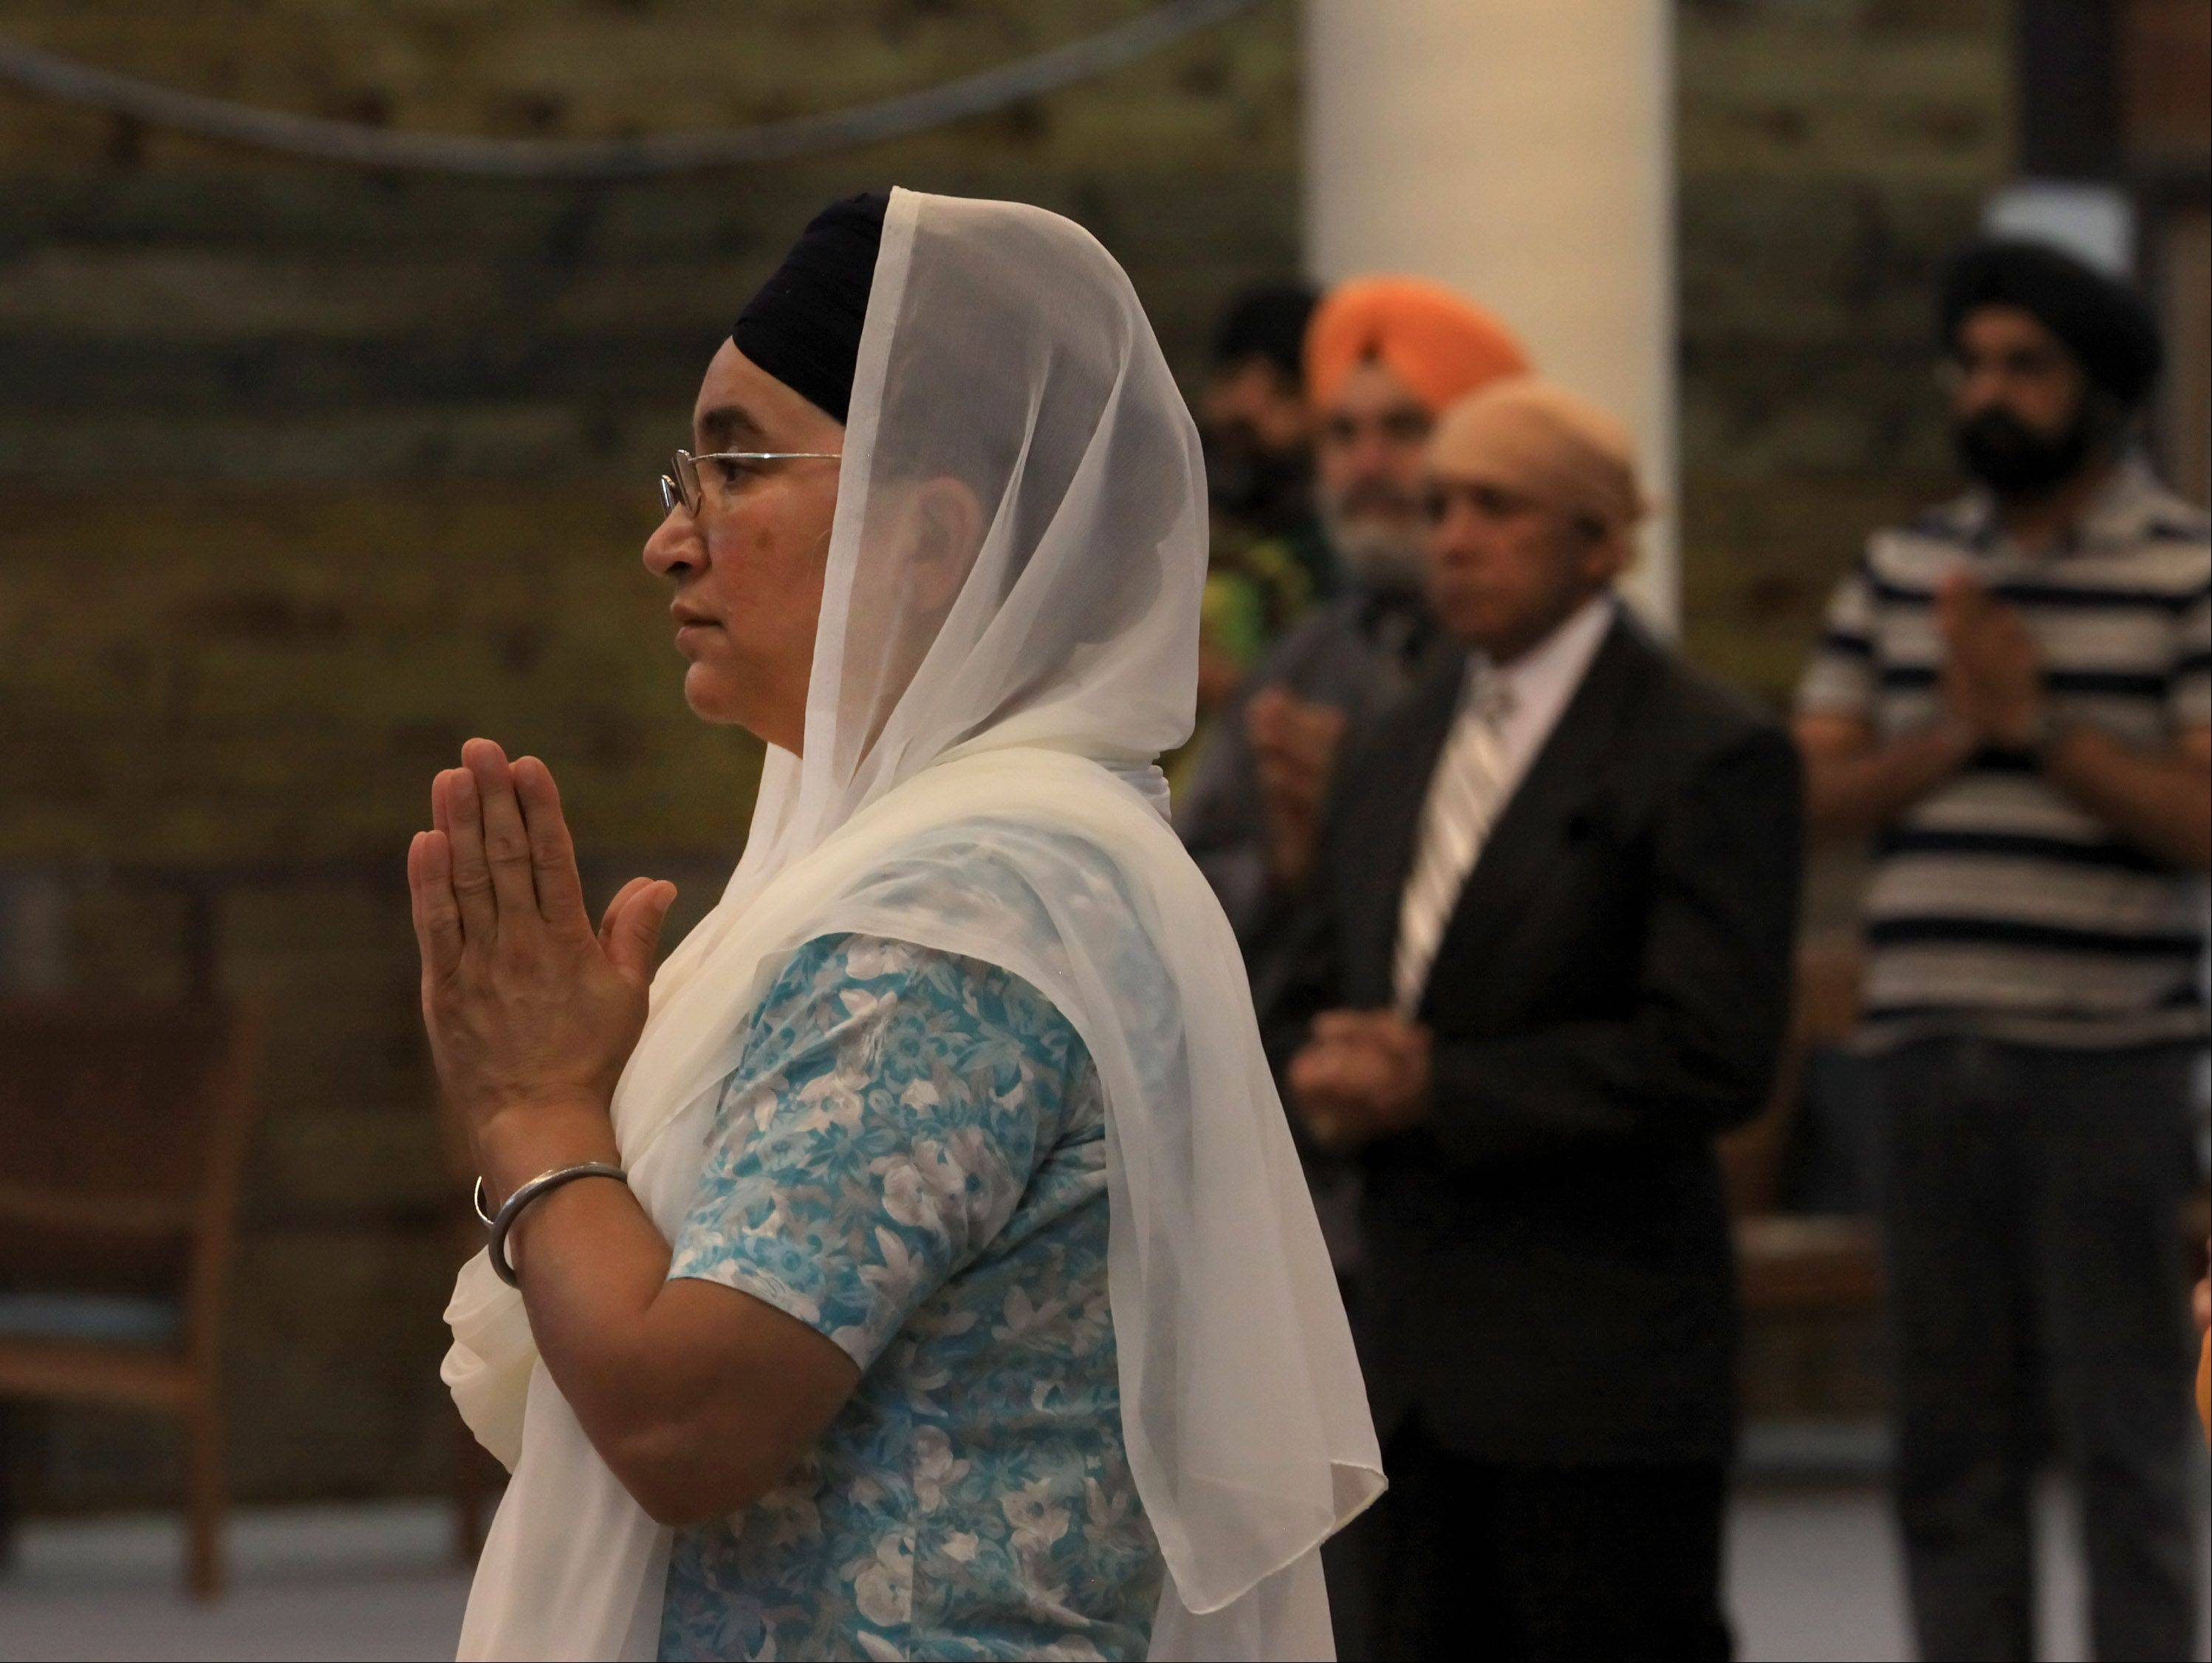 Paramjeet Kauer of Chicago prays during a service Monday at the gurdwara in Palatine.